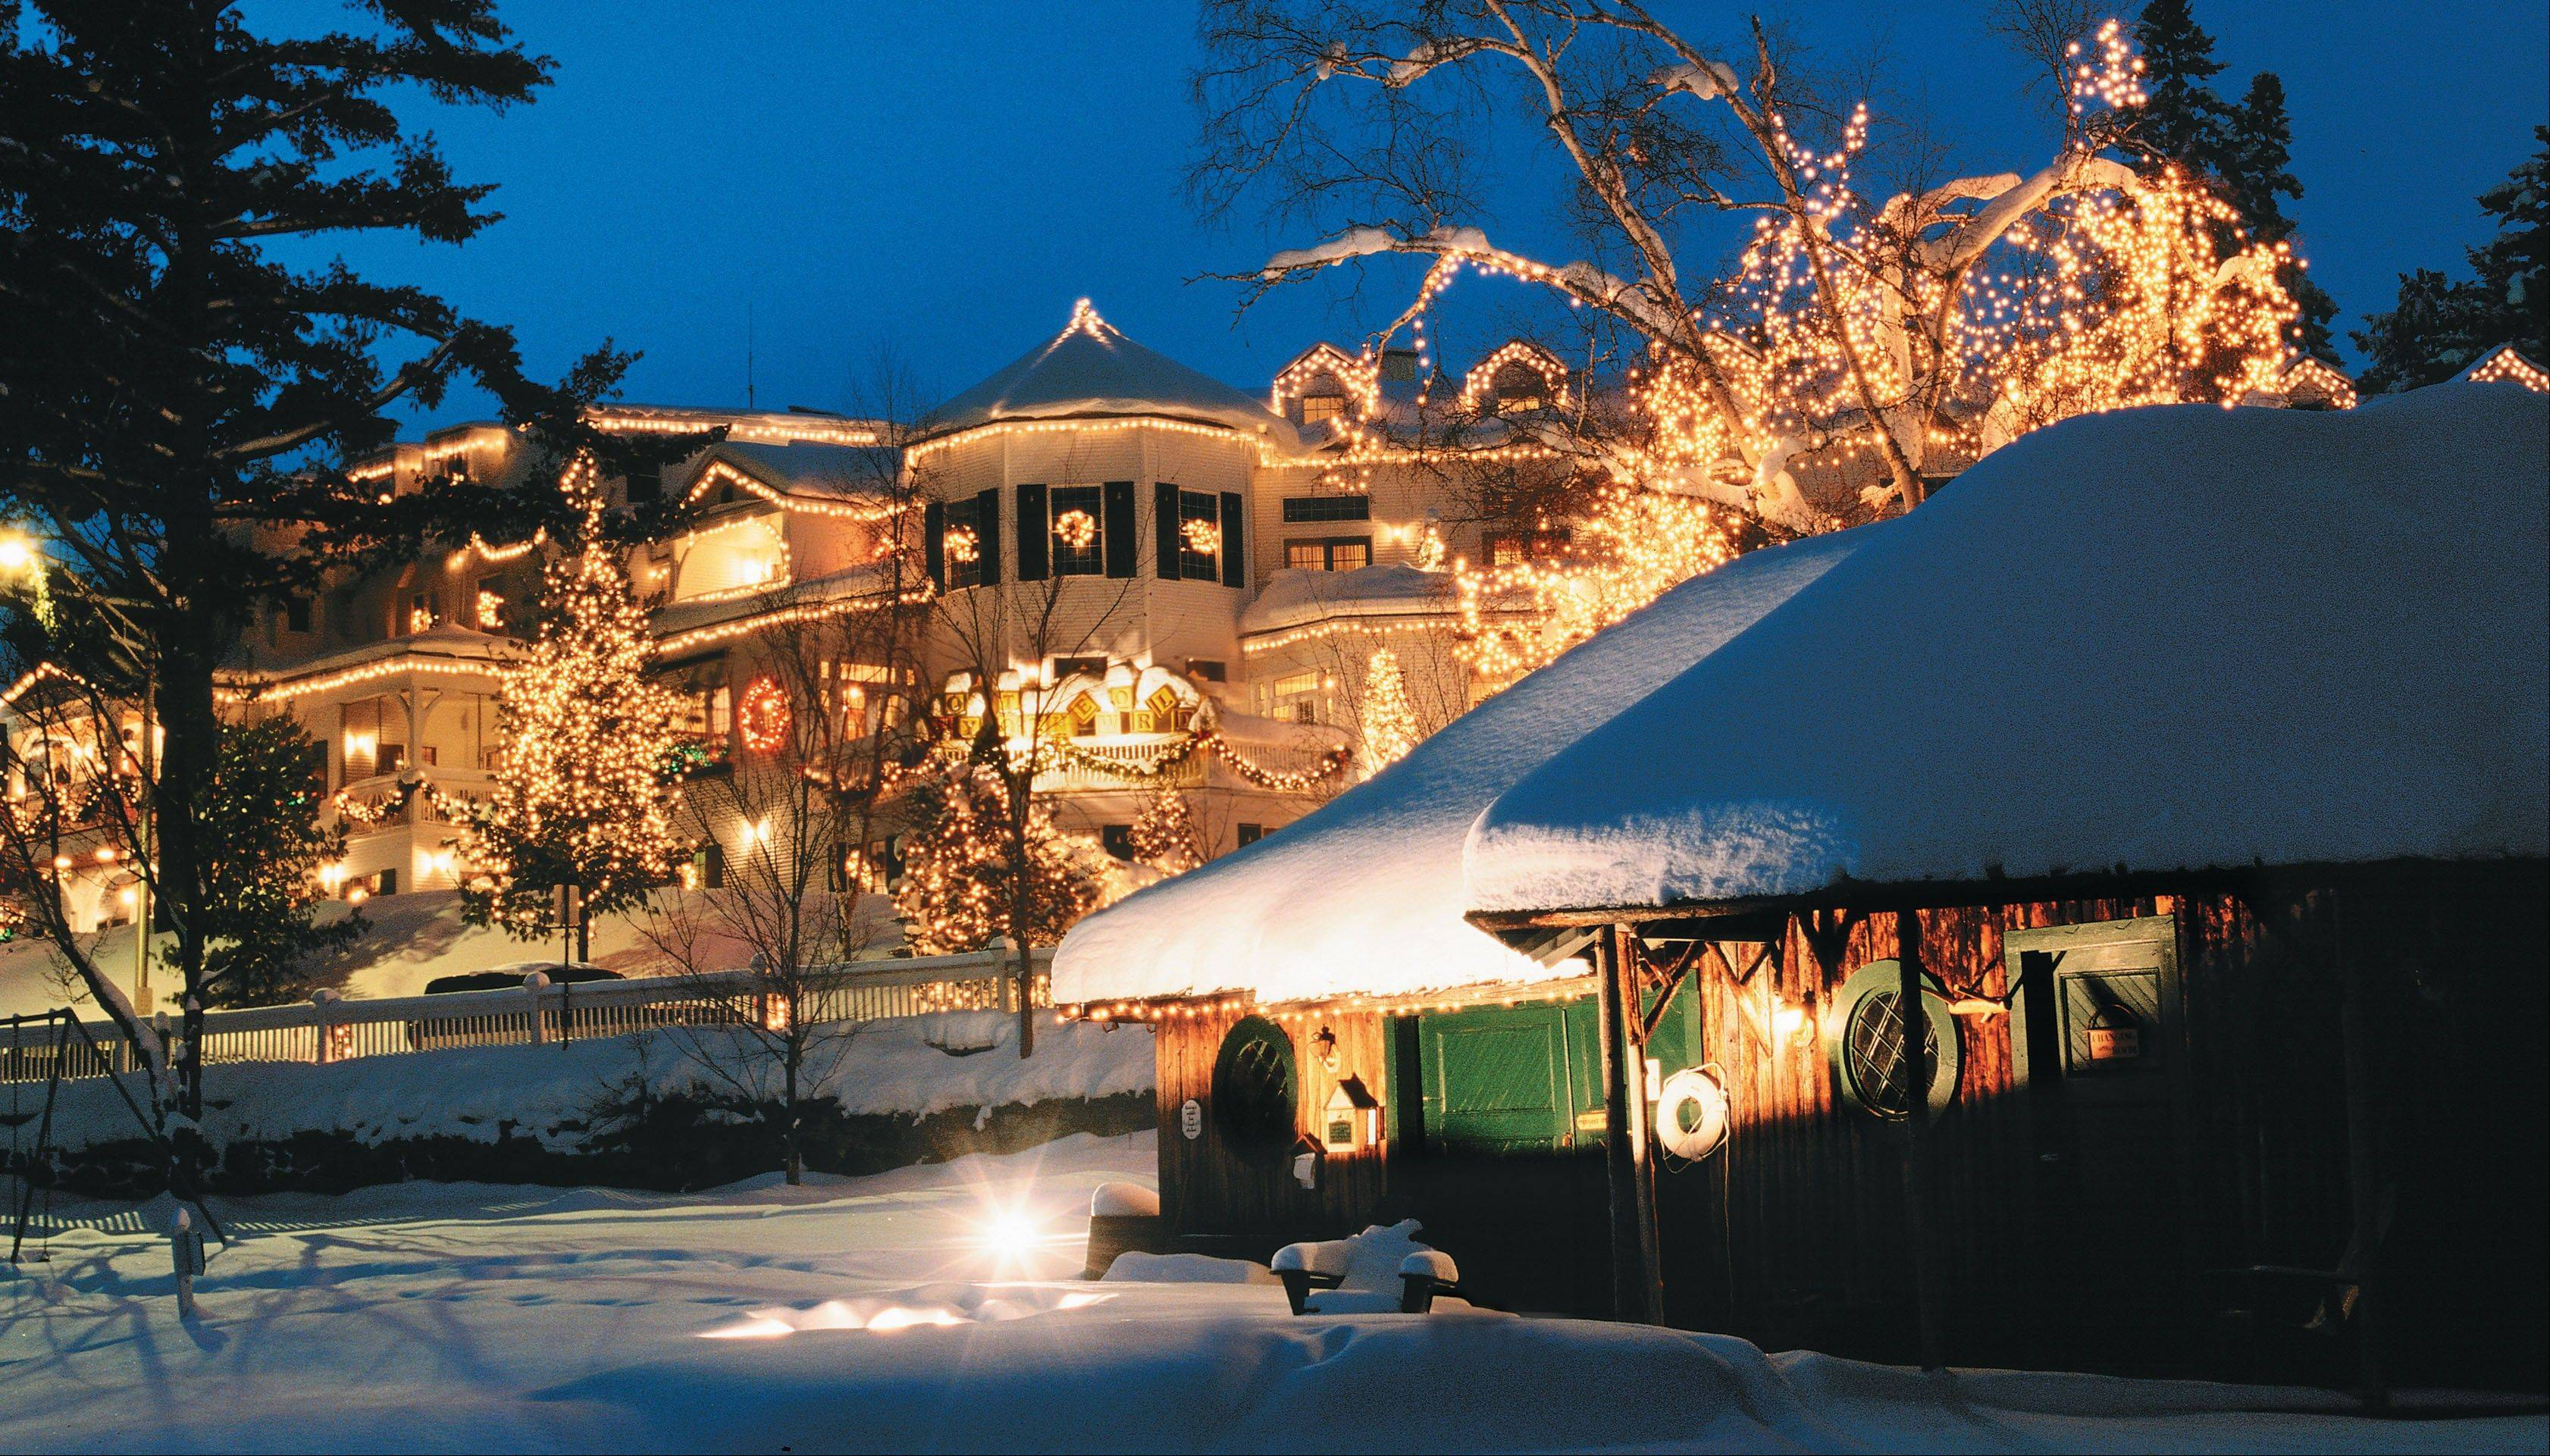 Mirror Lake Inn is decked out with holiday lights in Lake Placid, N.Y. The inn was founded in the 1920s as Mir-a-Lac, was renamed Mirror Lake Inn in 1933 and has been owned by Ed and Lisa Weibrecht since 1976.